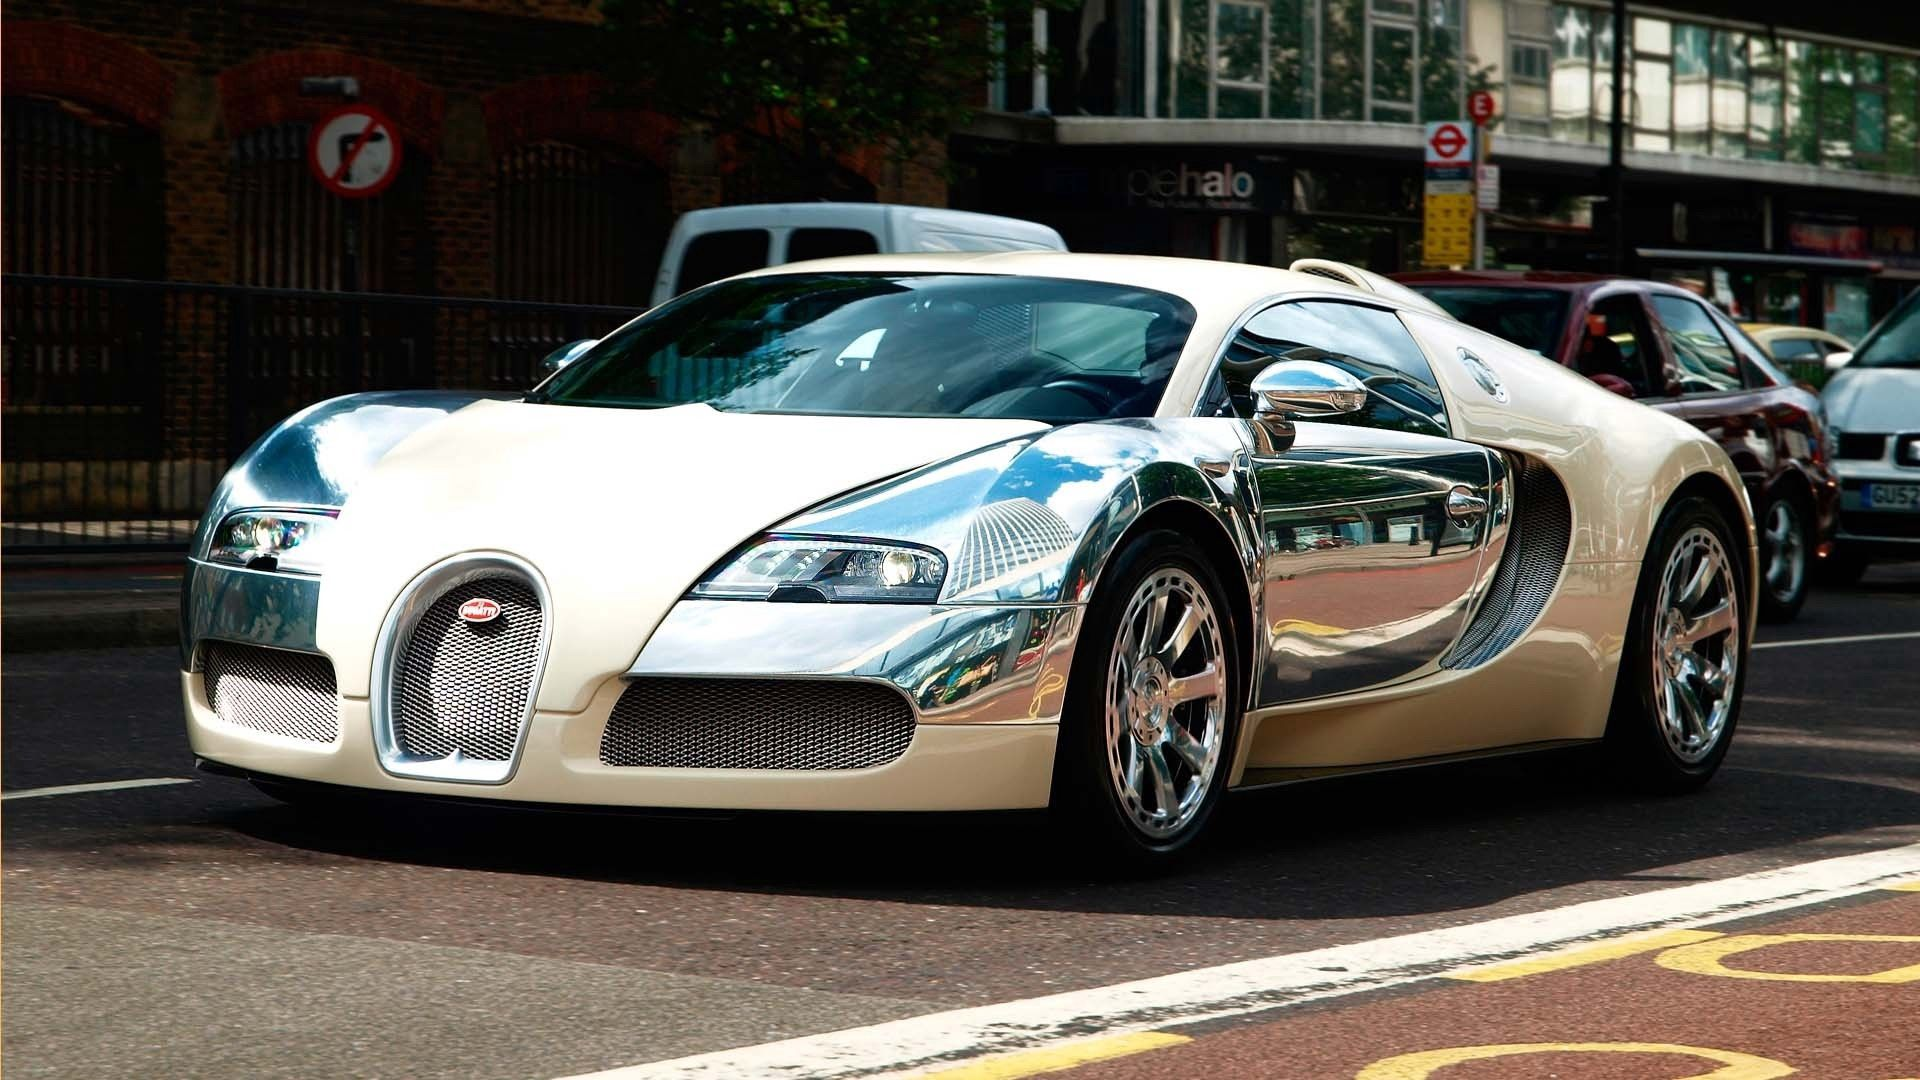 133653 download wallpaper Volkswagen, Bugatti, Cars, Veyron, Concern Volkswagen screensavers and pictures for free